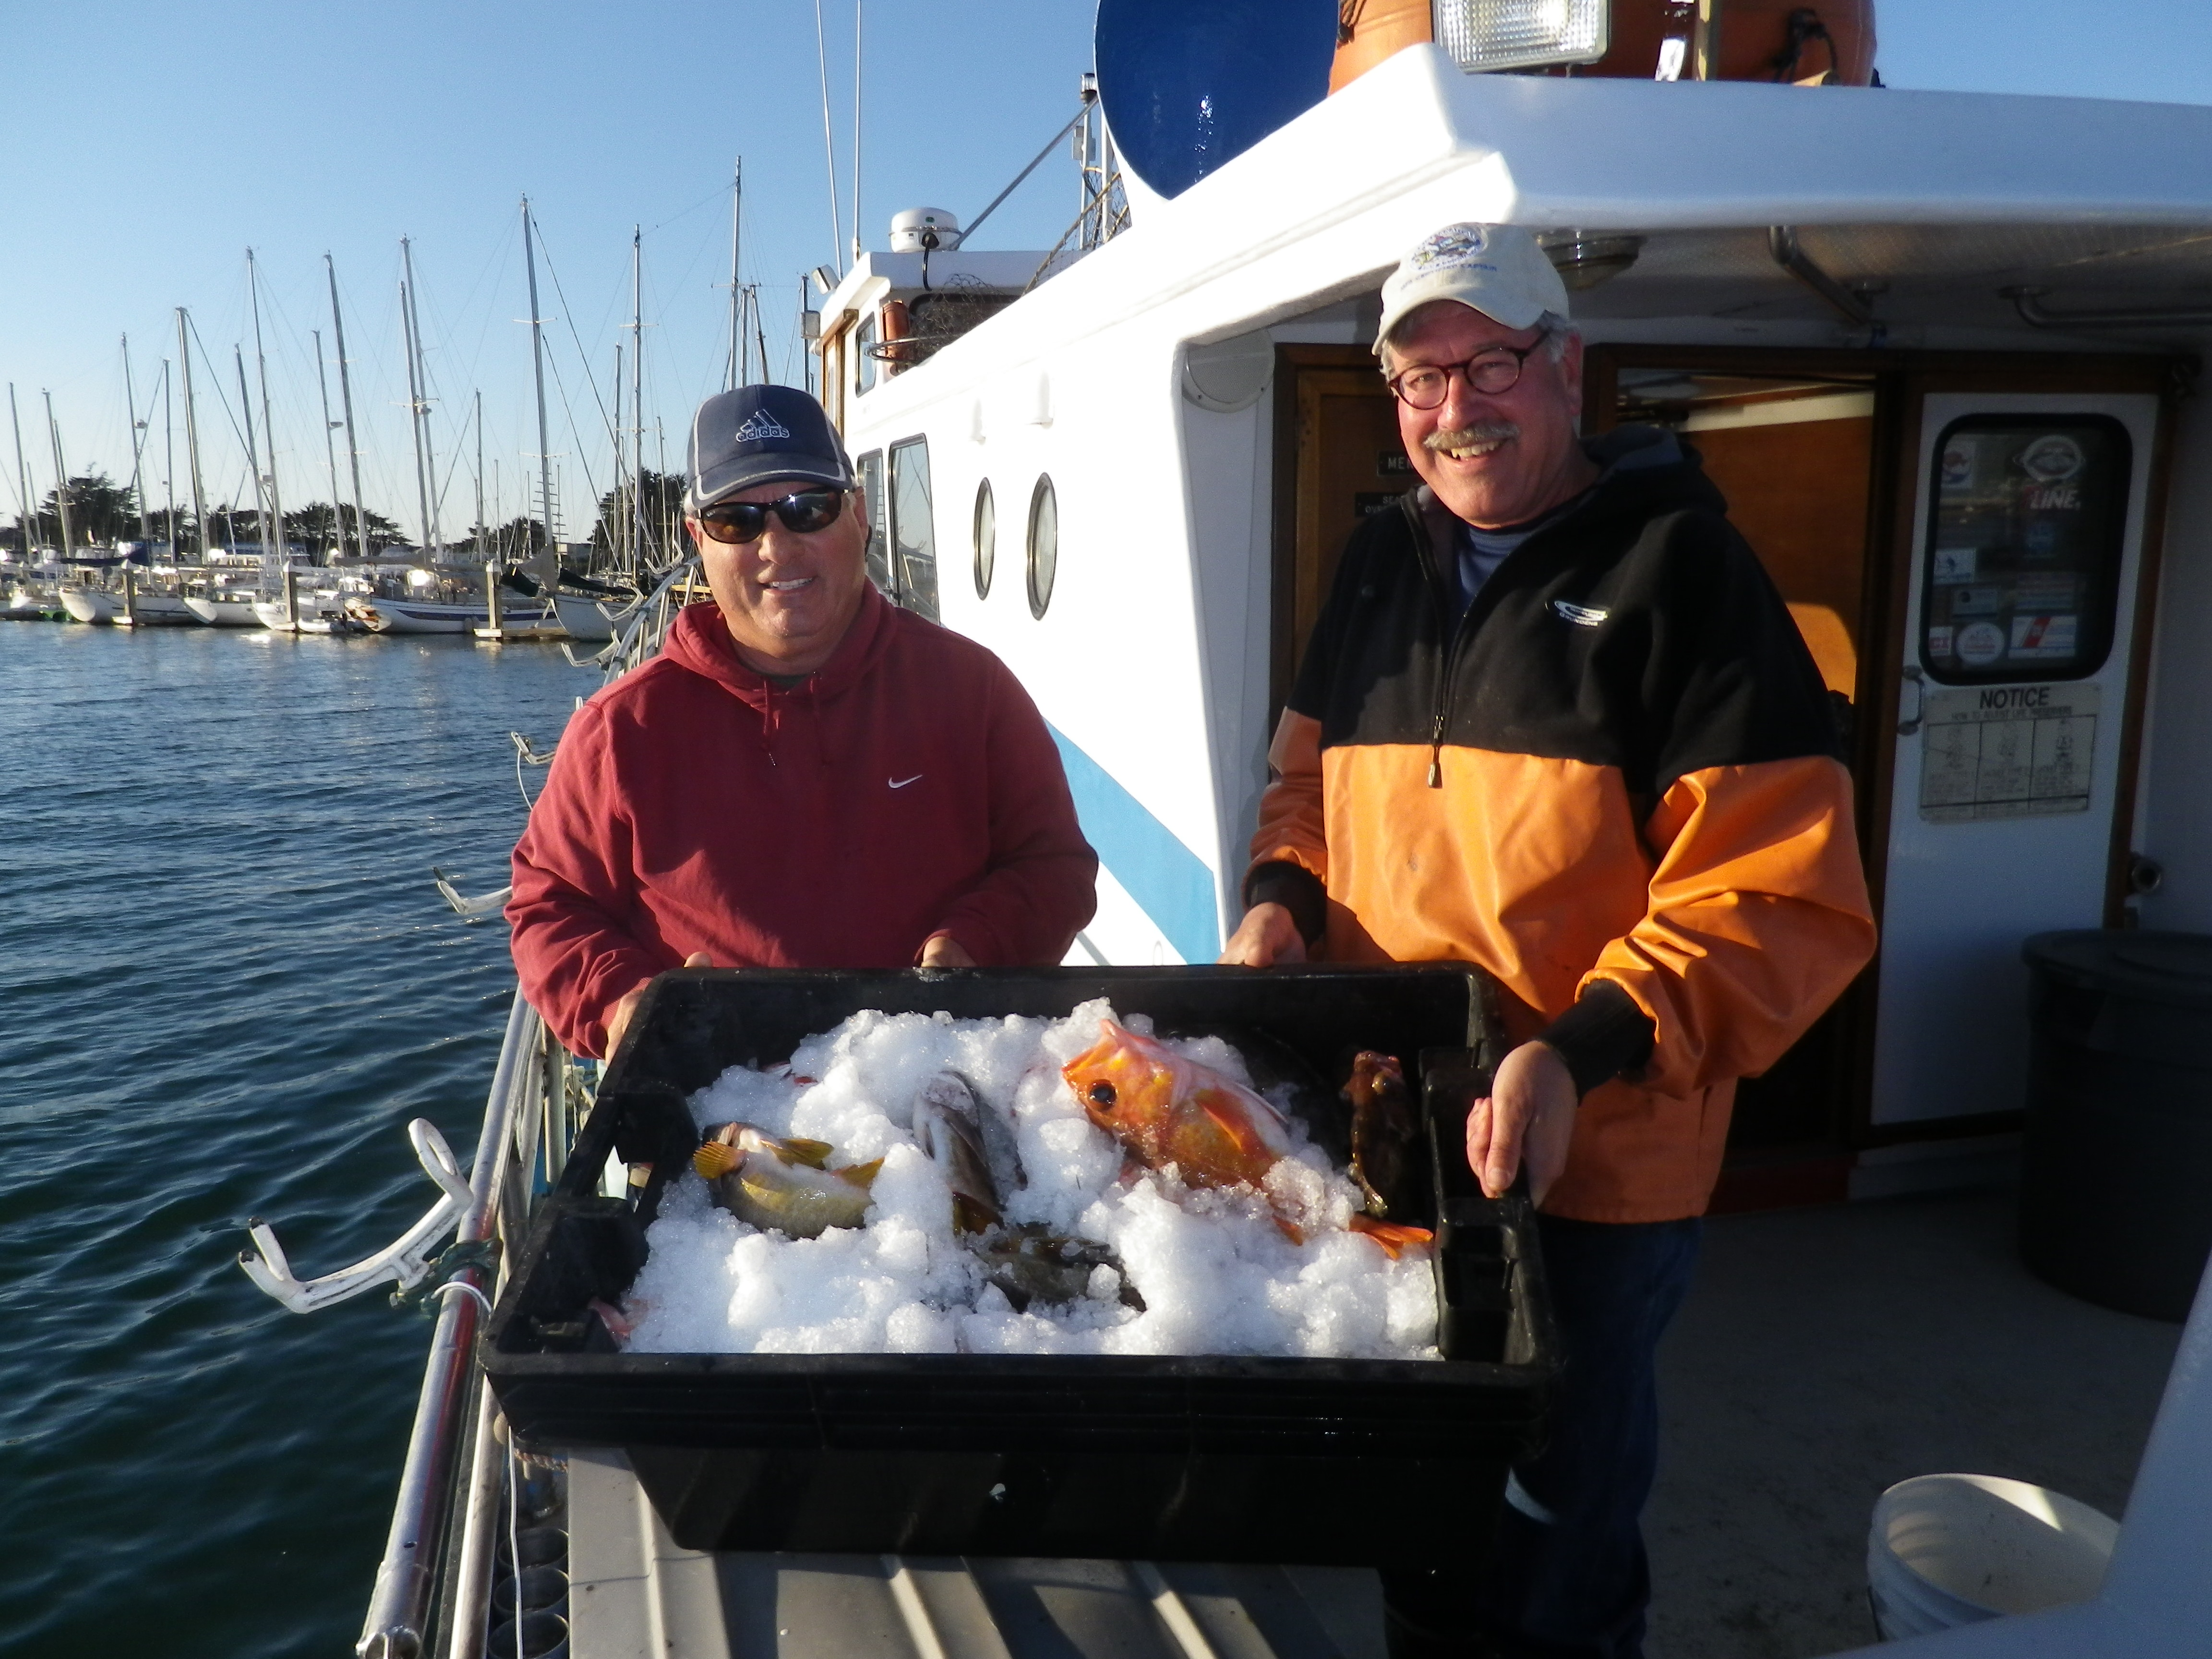 F/V Huli Cat captians Jim Anderson and Tom Mattusch displaying their catch from RCA sampling sites.